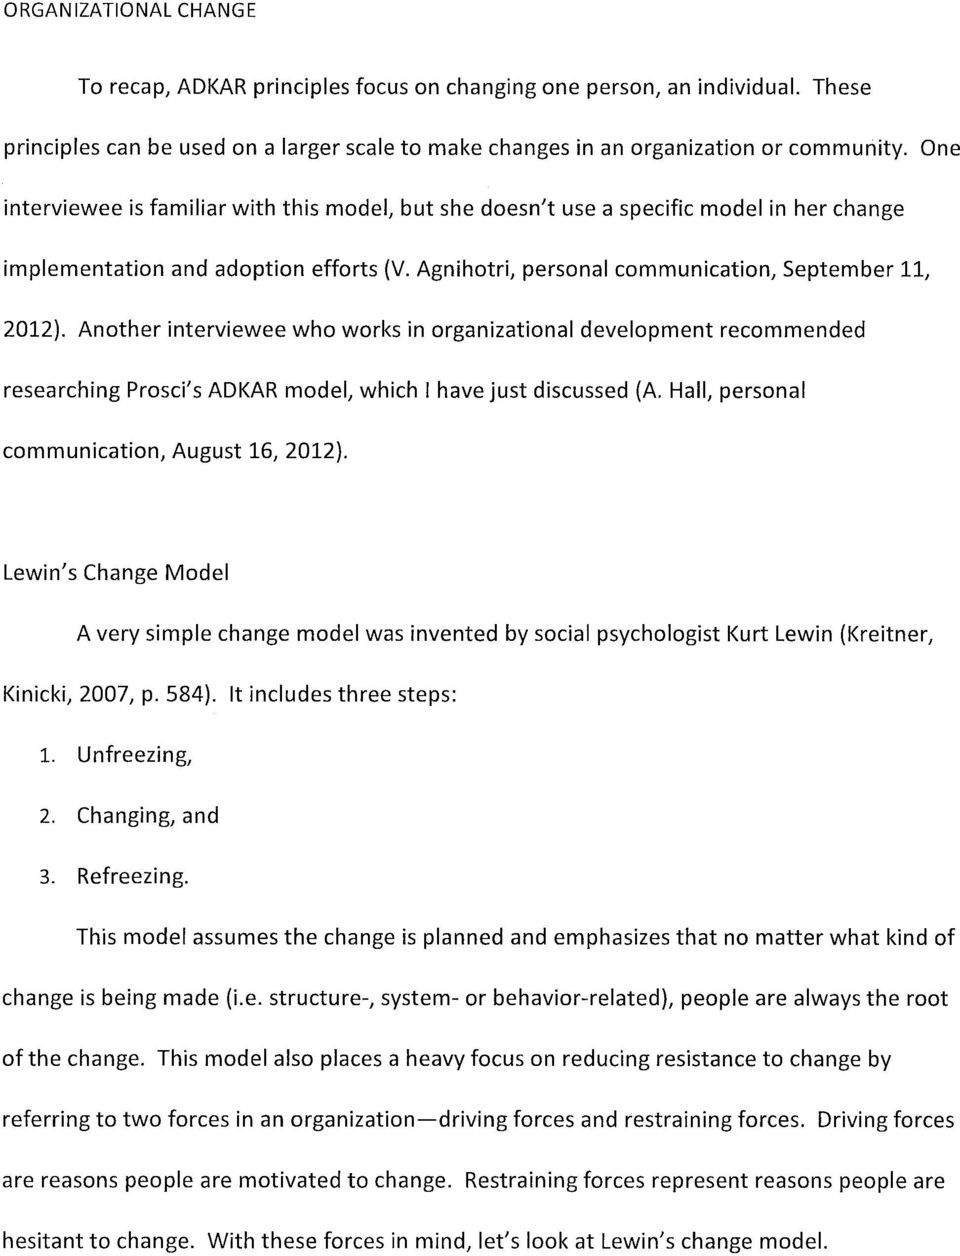 Another interviewee who works in organizational development recommended researching Prosci's ADKAR model, which I have just discussed (A. Hall, personal communication, August 16, 2012).